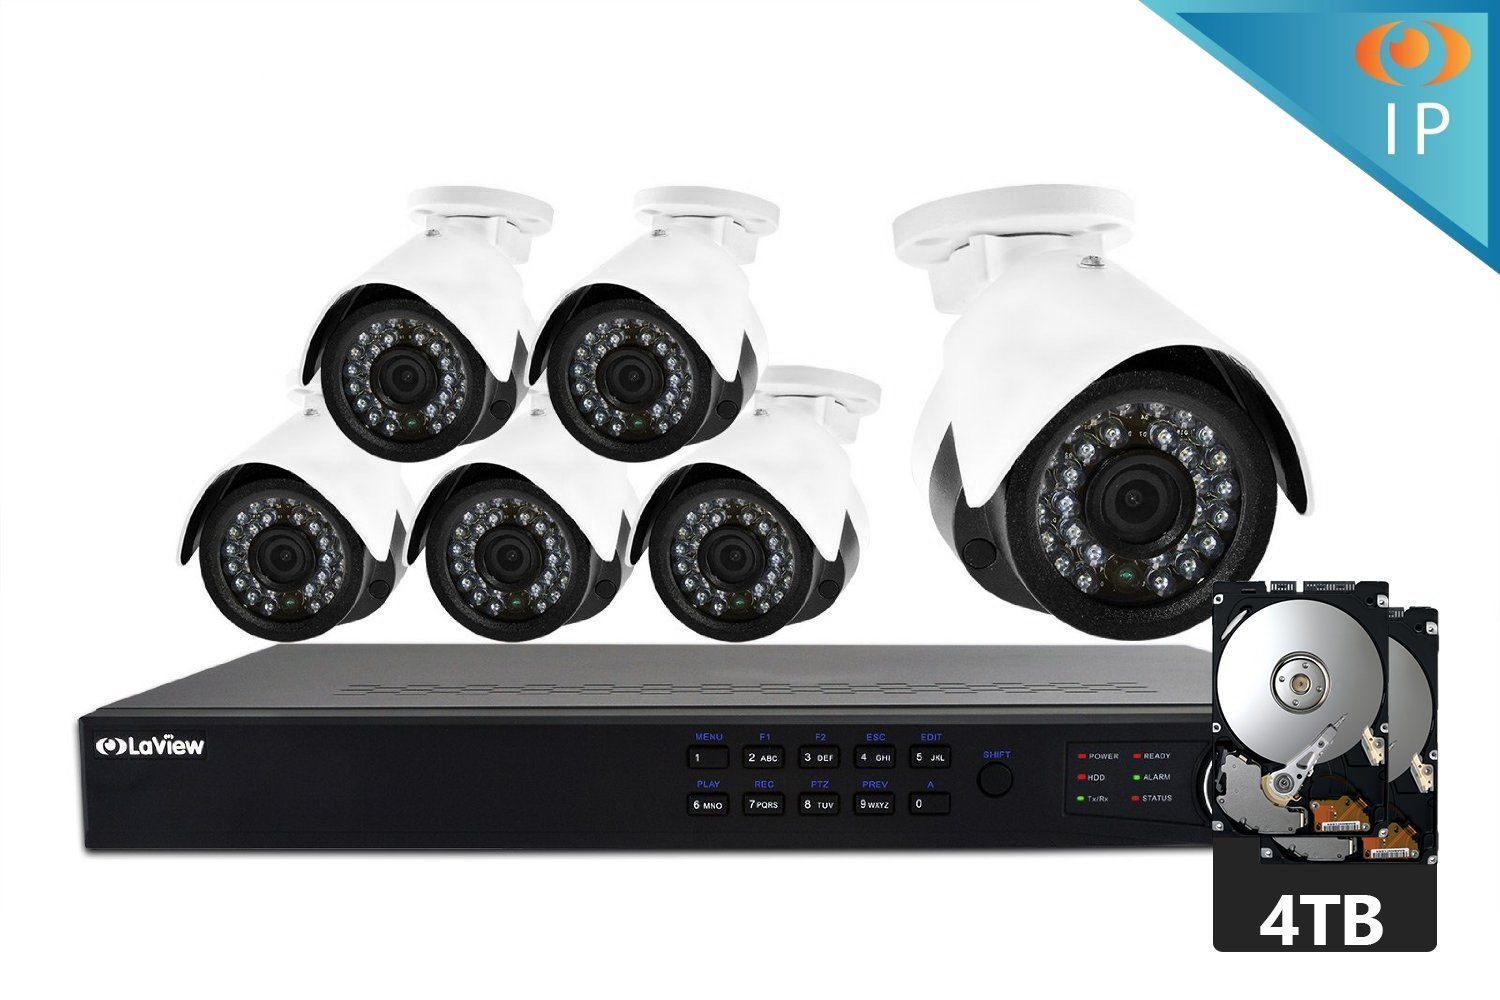 LaView 1080P HD IP 6 Camera Security System 8 Channel PoE 1080p NVR with a 4TB HDD Indoor/Outdoor Cameras Day/Night Surveillance System with Remote Viewing